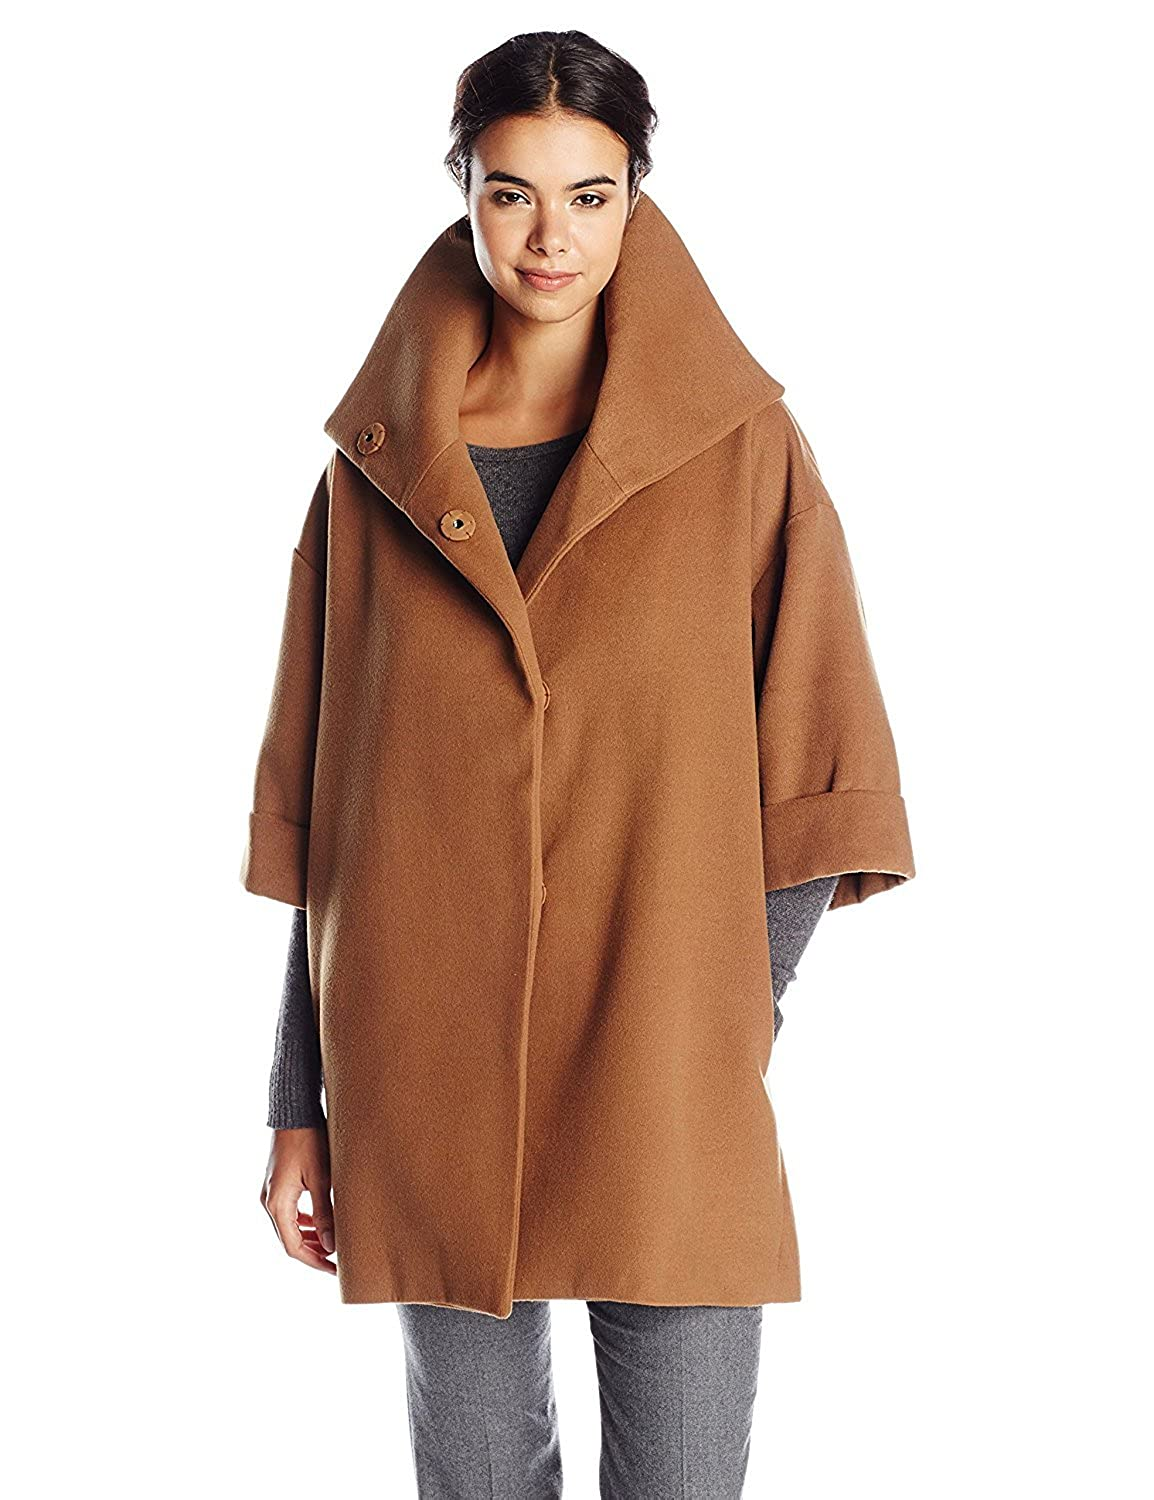 James Jeans Women's Paulina Jacket Brushed Camel Medium [並行輸入品] B075CJ8XG1